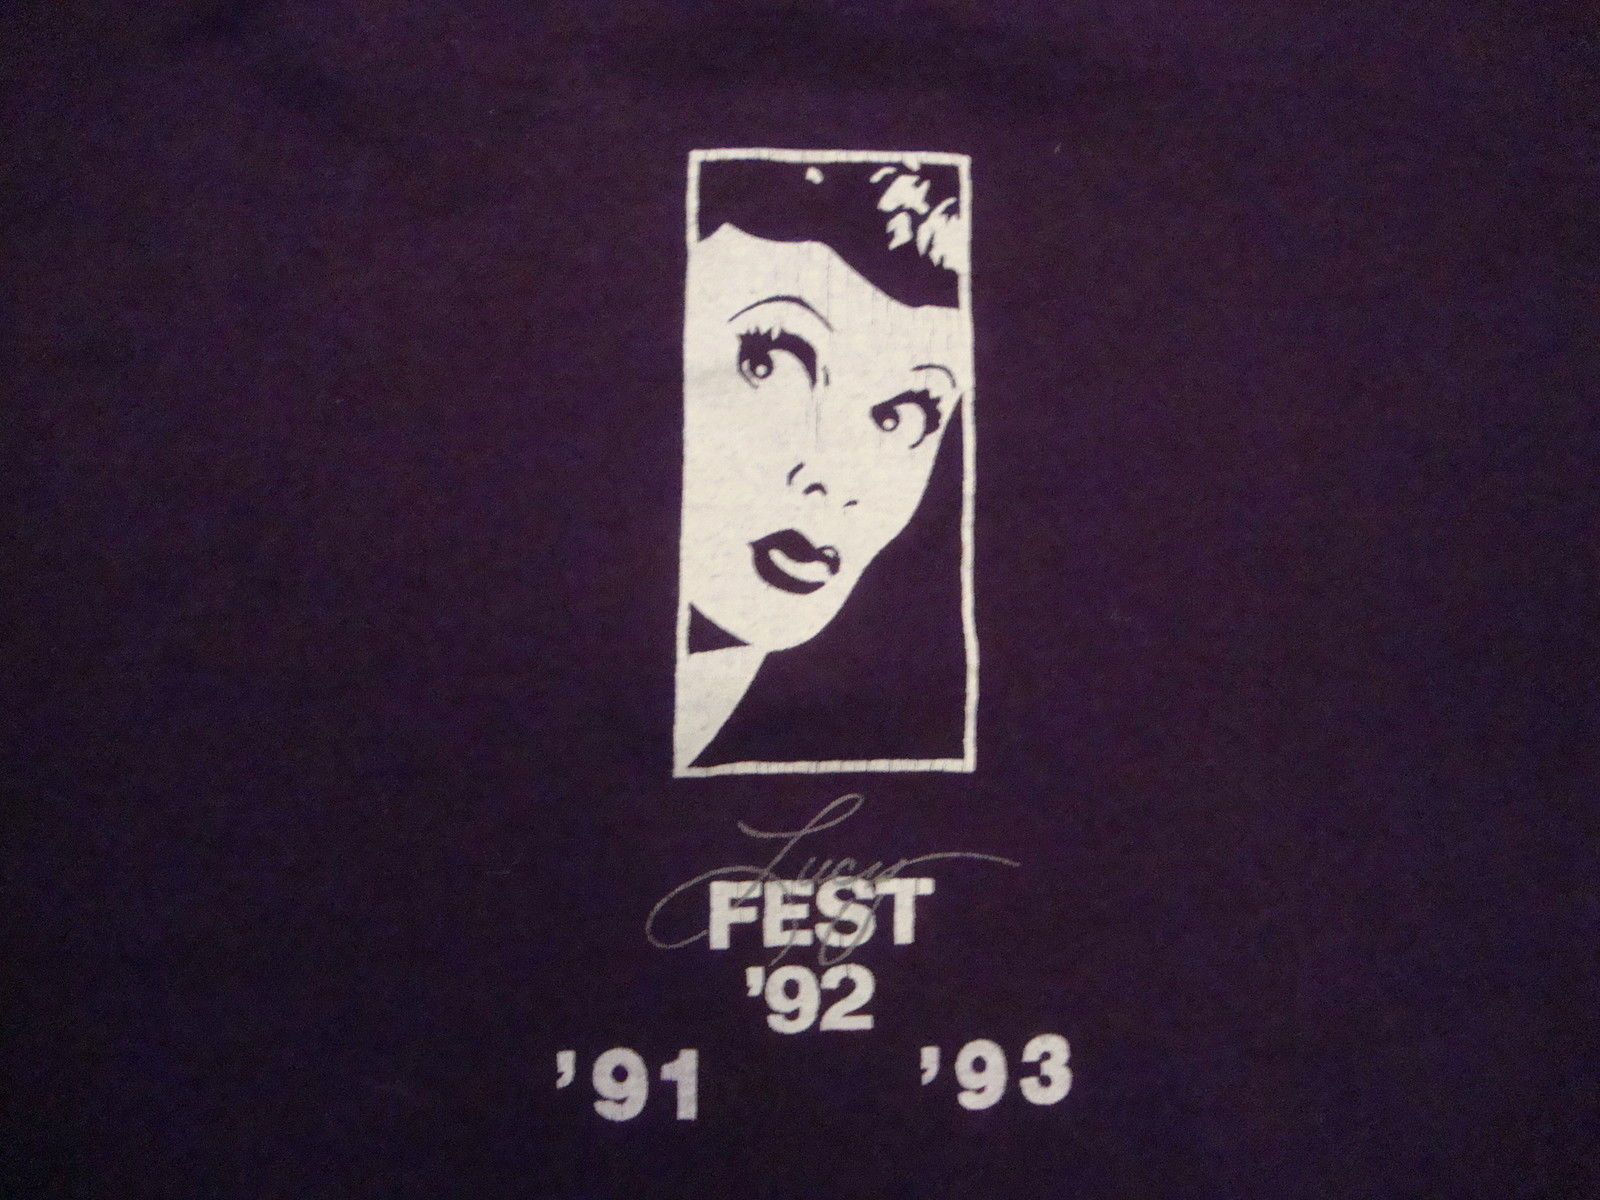 Primary image for Vintage Lucy Fest Lucille Ball Early 90's 50/50 funny tv lucyfest T Shirt XL